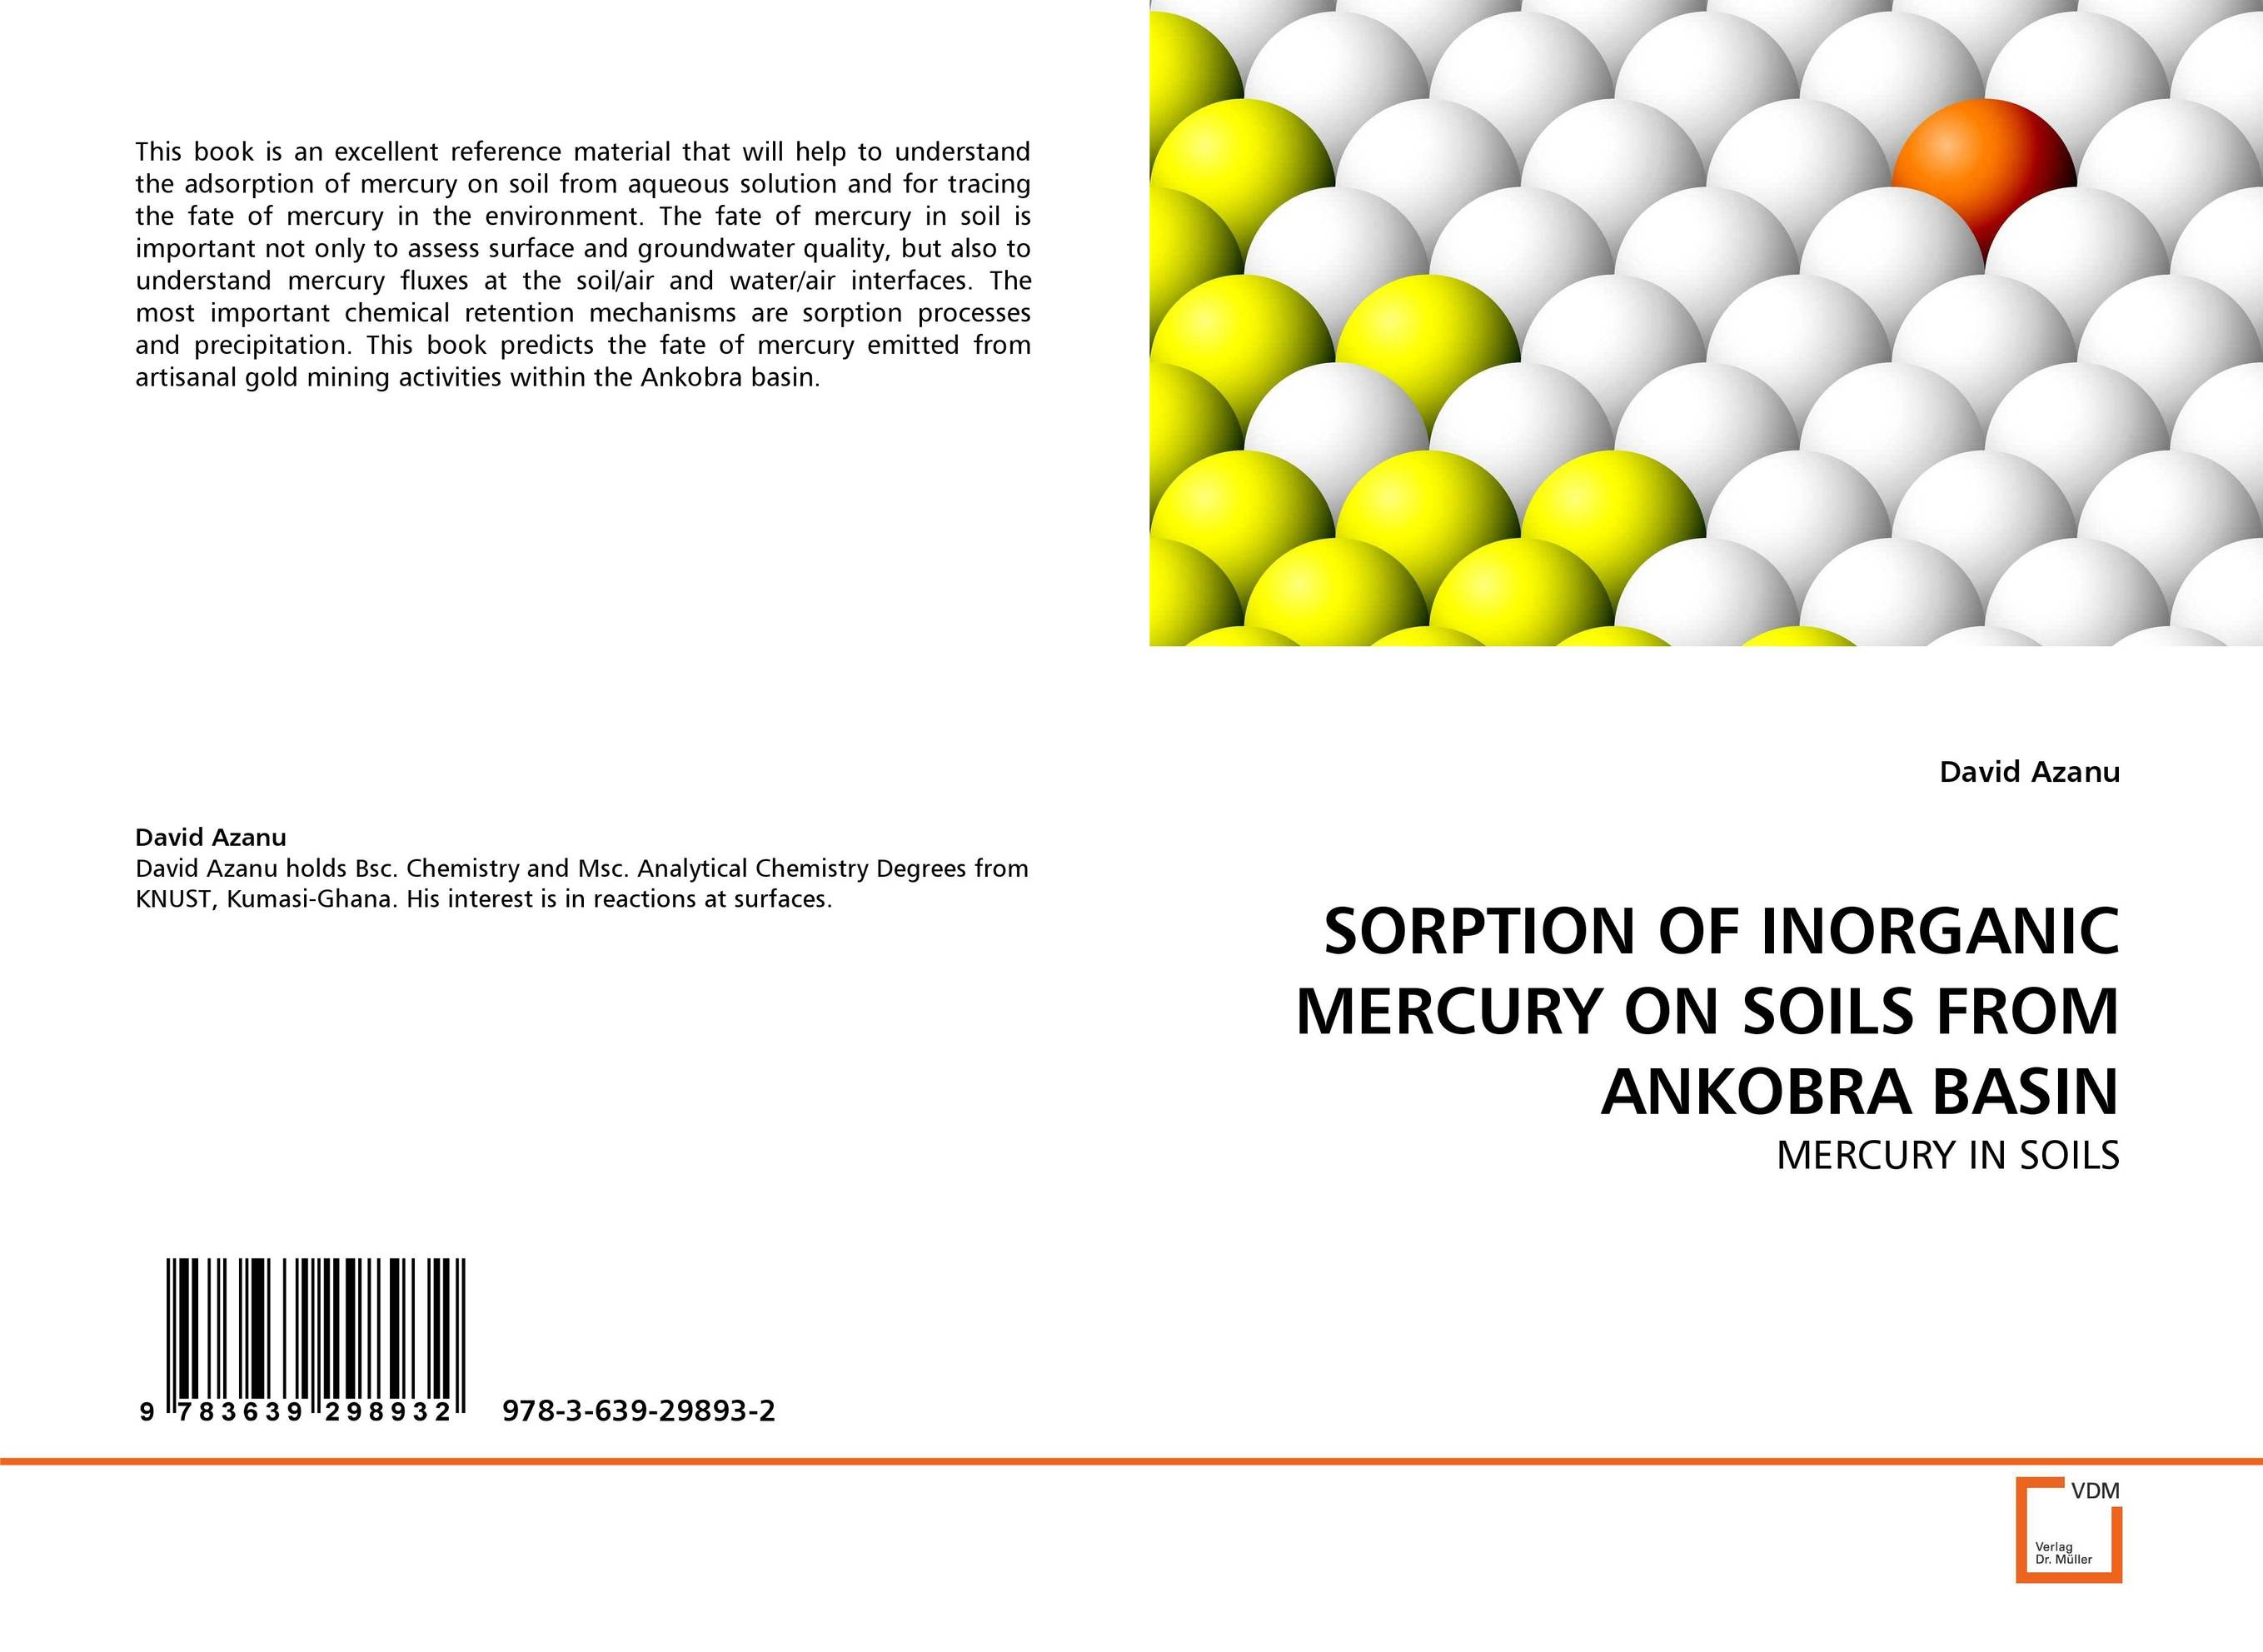 SORPTION OF INORGANIC MERCURY ON SOILS FROM ANKOBRA BASIN analysis fate and removal of pharmaceuticals in the water cycle 50